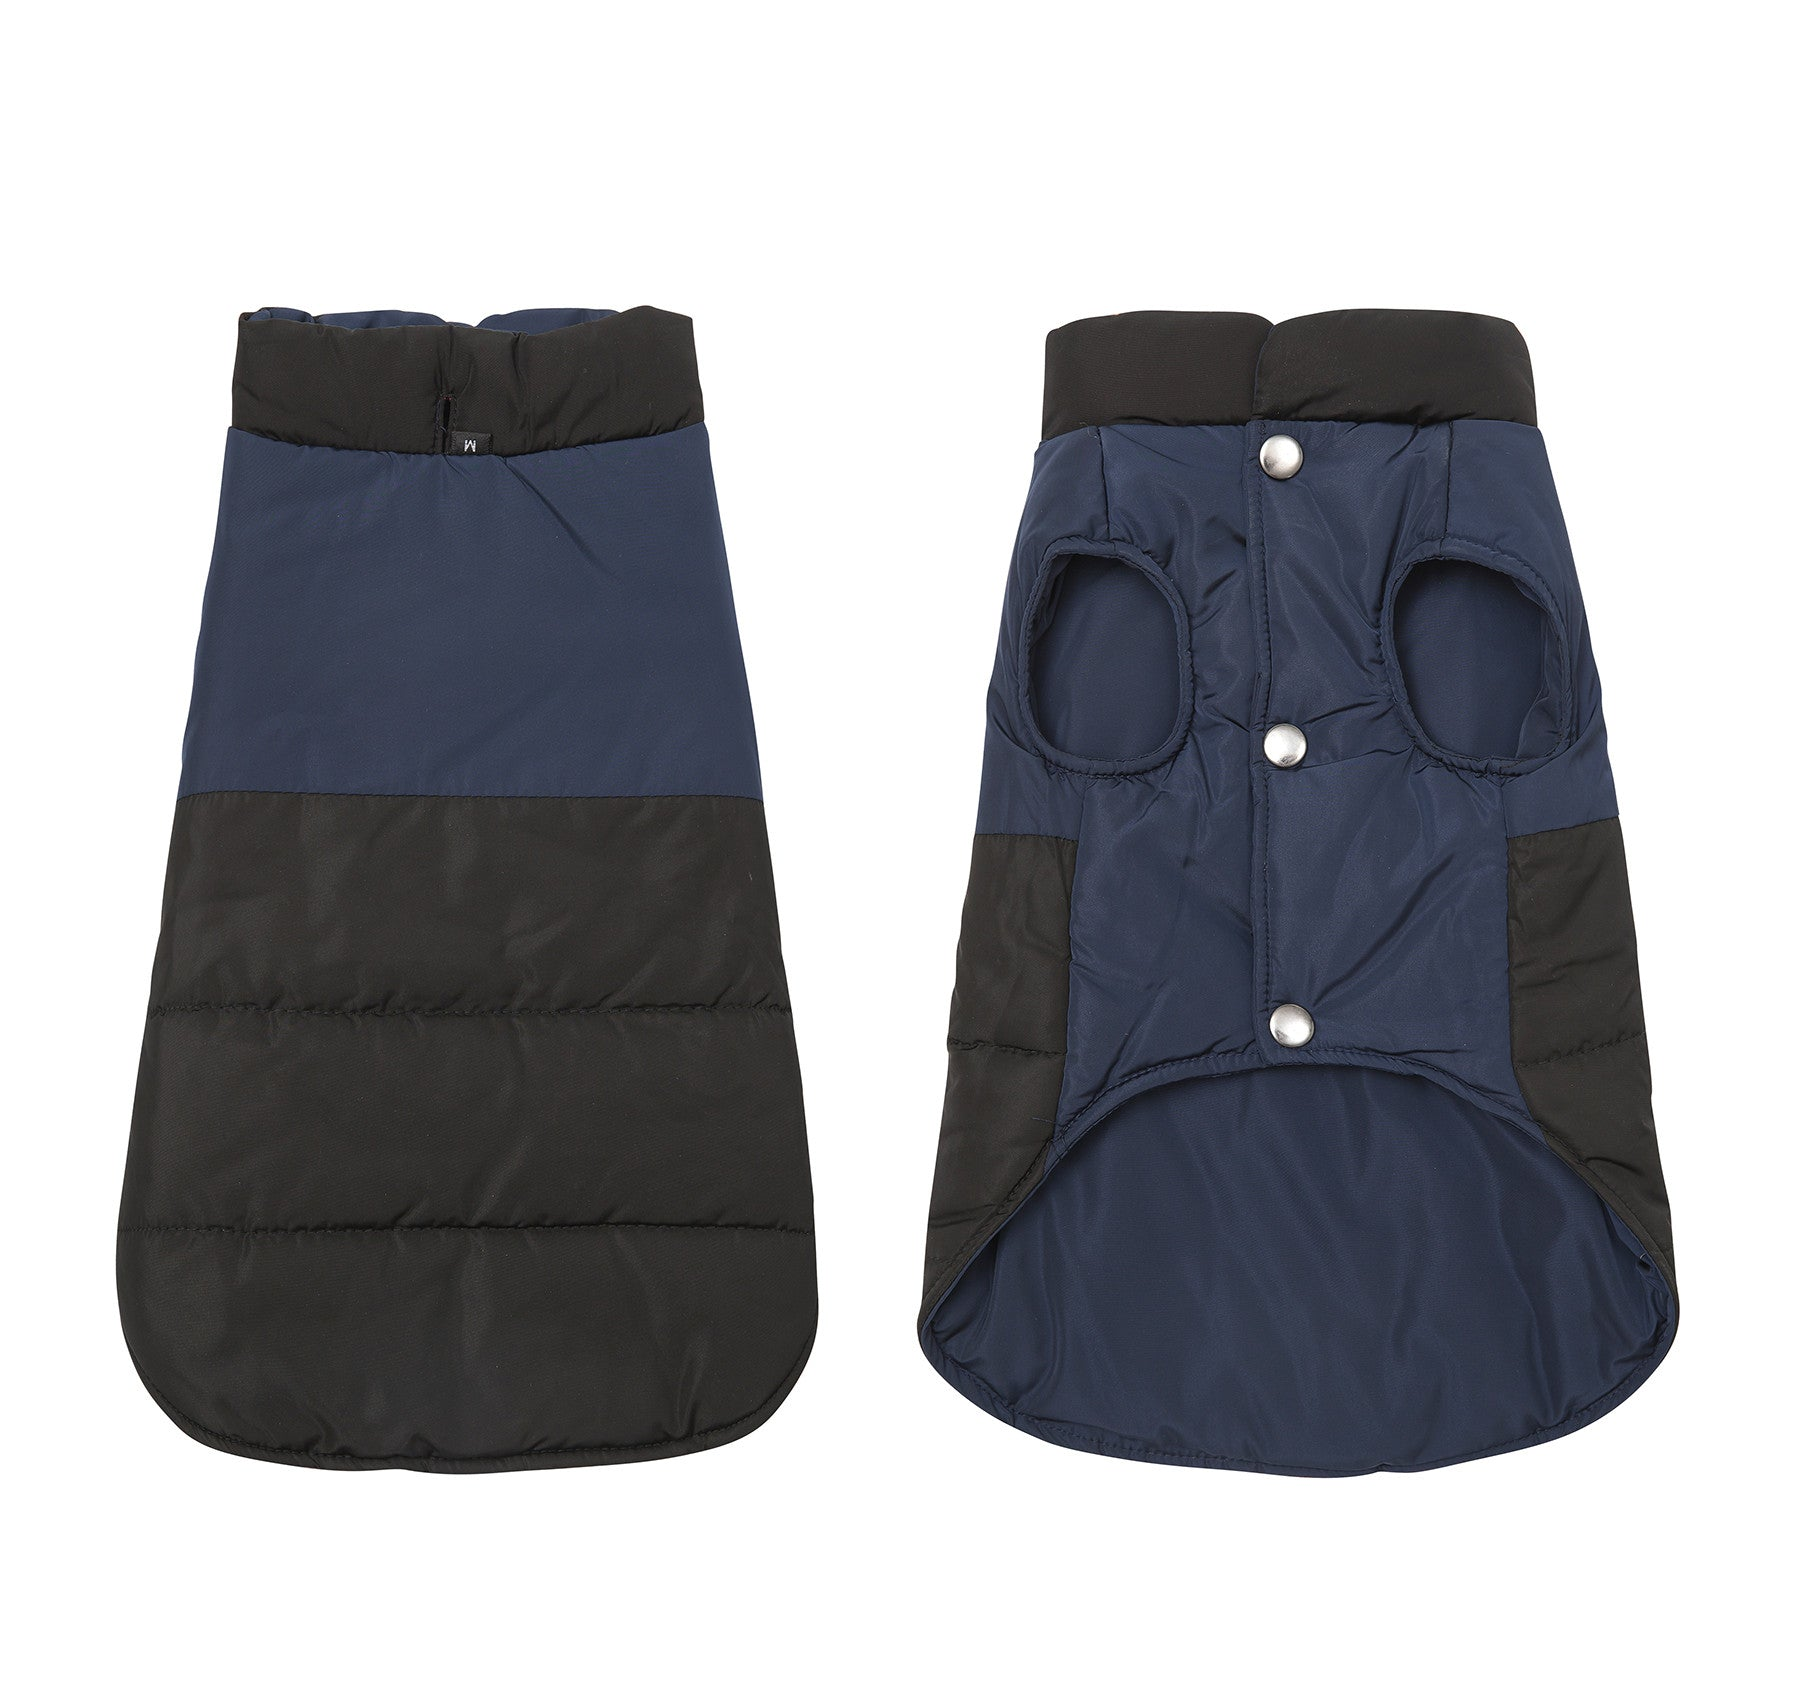 Outdoor Sports Waterproof Double Sided Wear Dog Coat Pet Clothes Cotton Coat for Autumn Winter